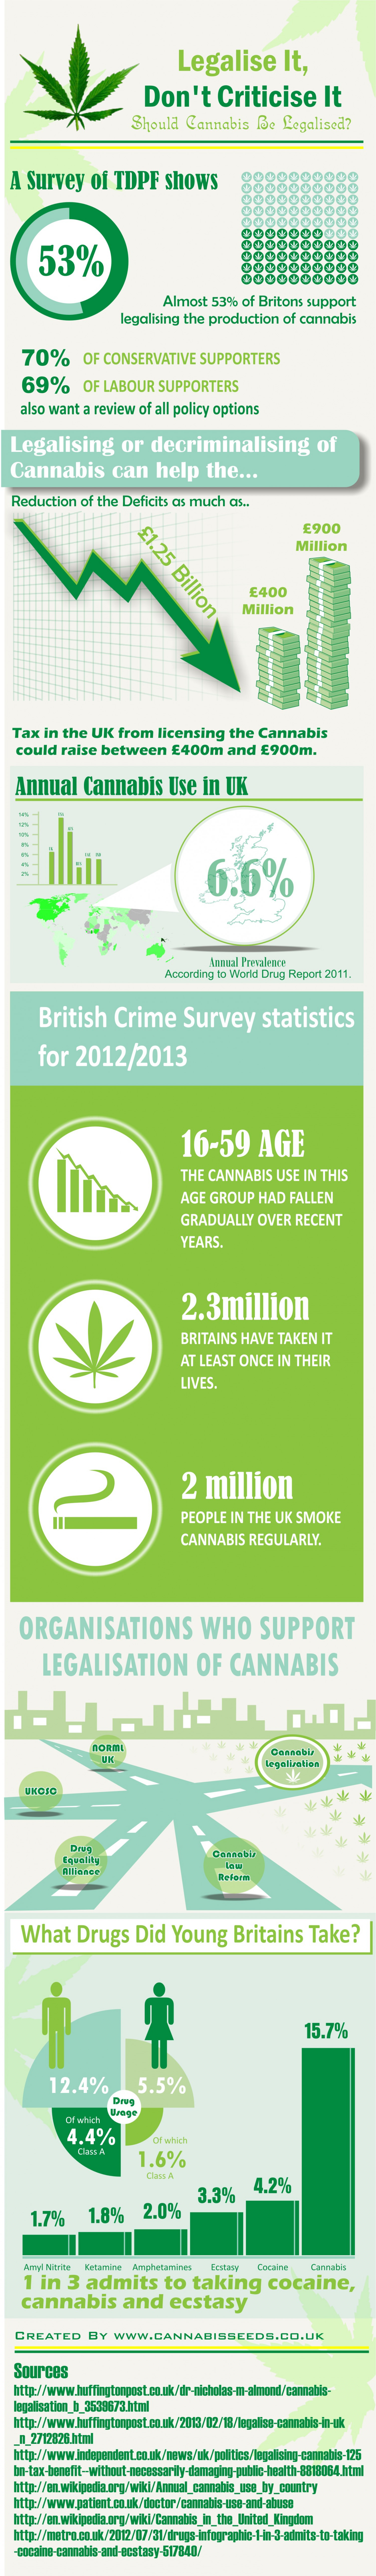 Legalise it, Don't Criticise it Infographic